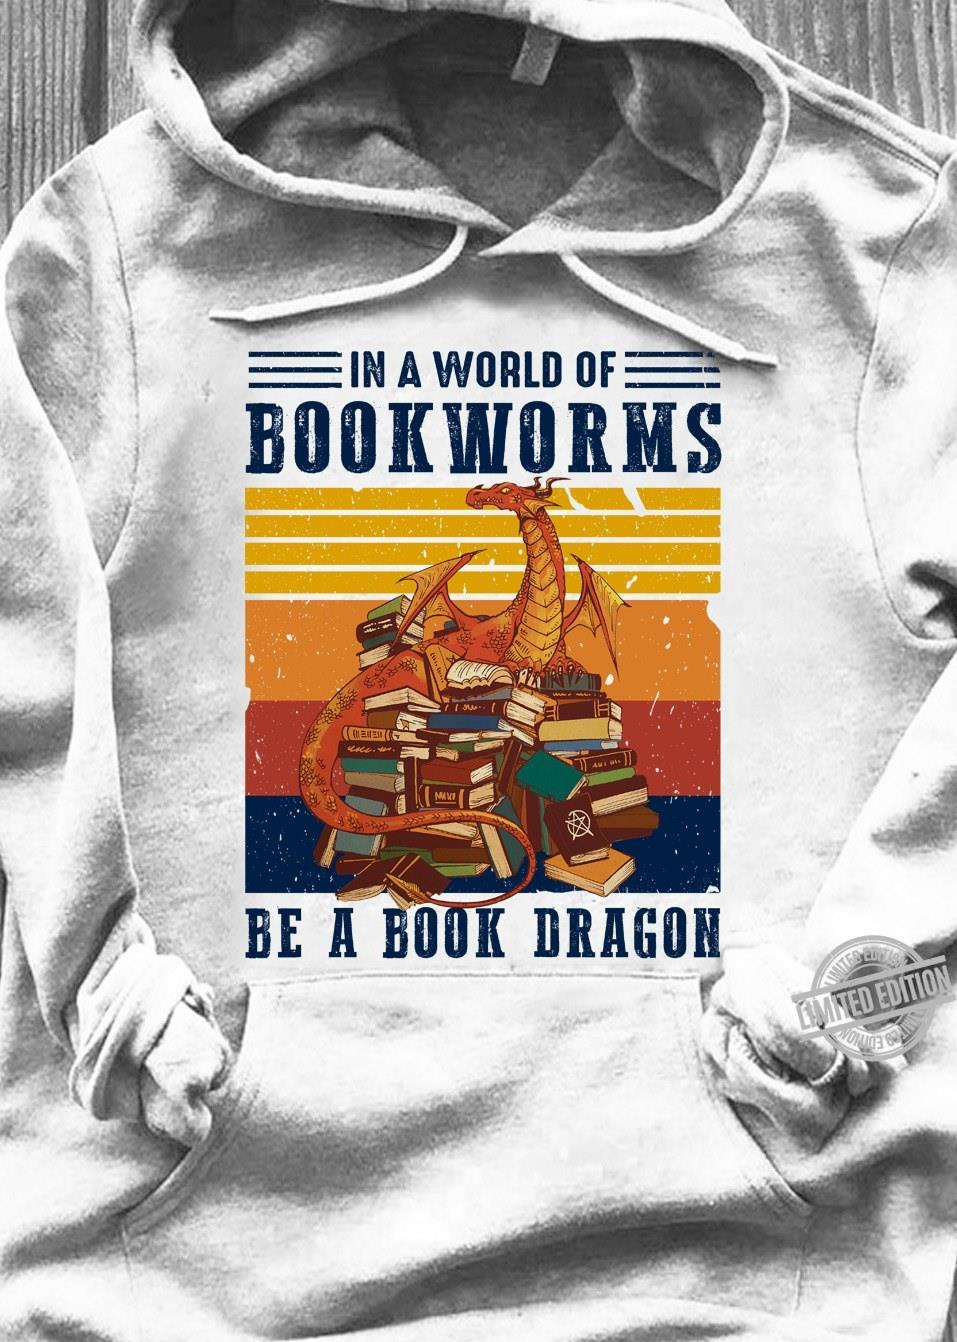 In A World Of Book Worms Be A Book Dragon Shirt